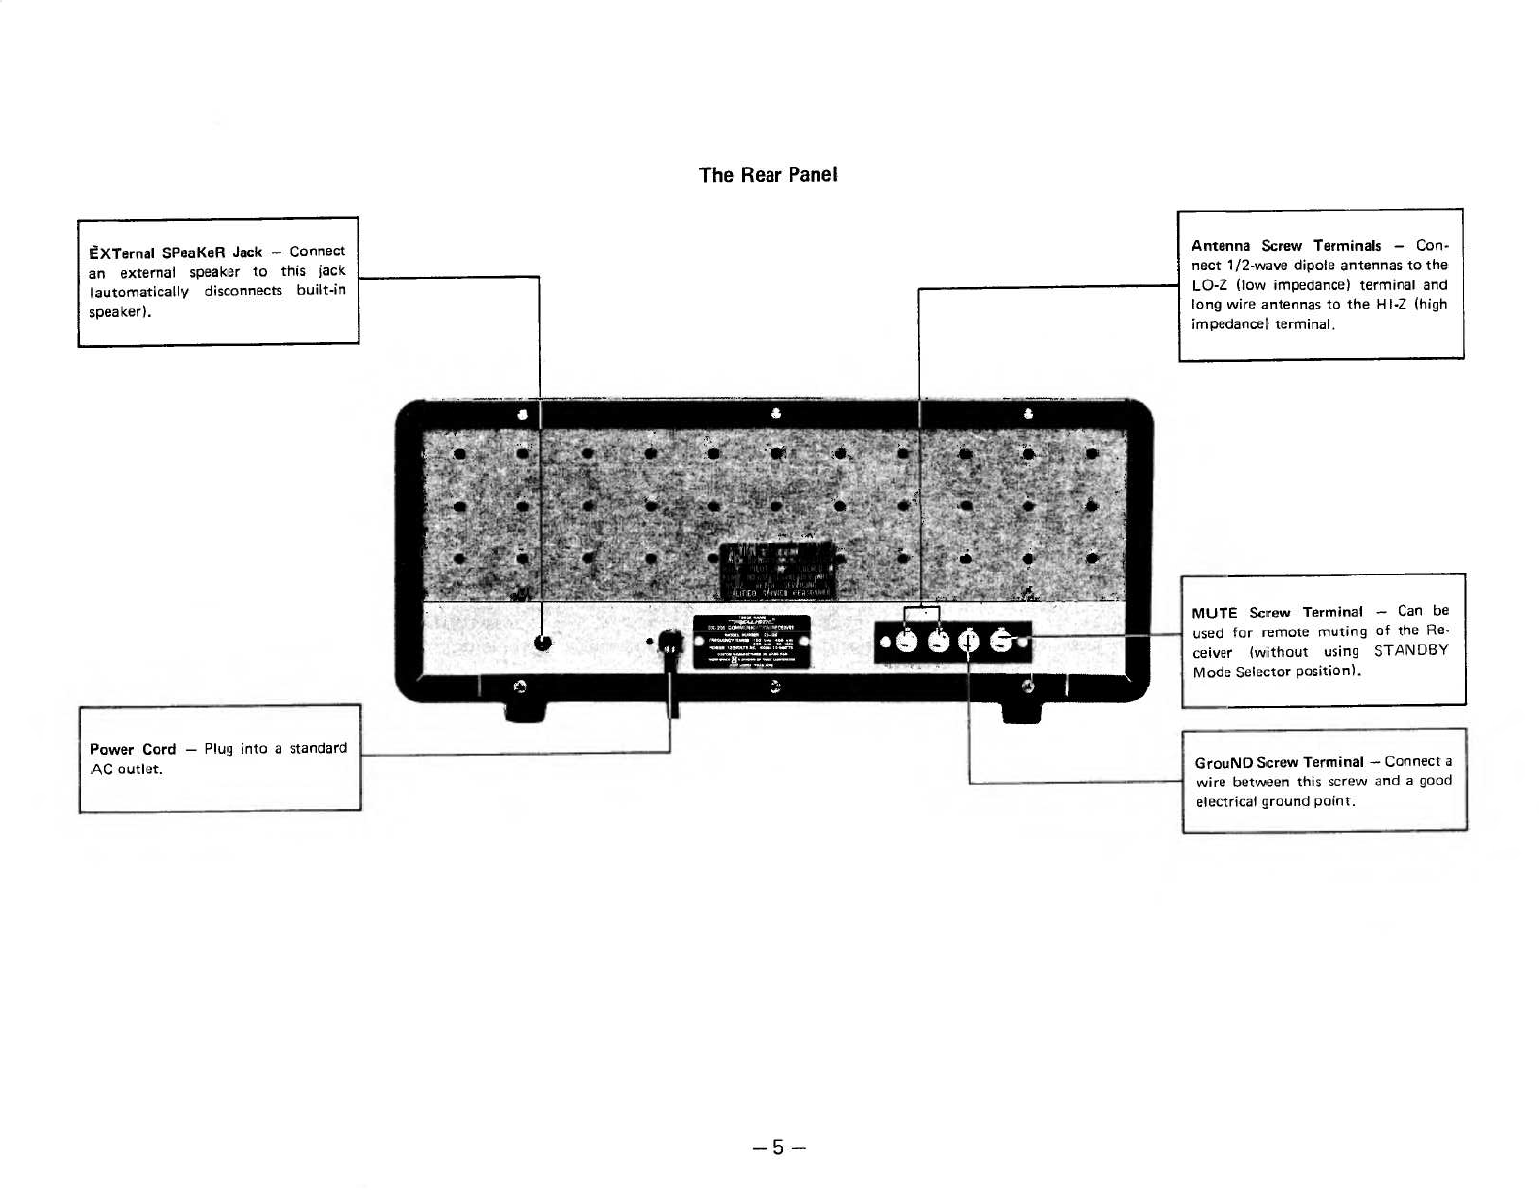 Page 5 of Realistic Stereo Receiver DX-200 User Guide